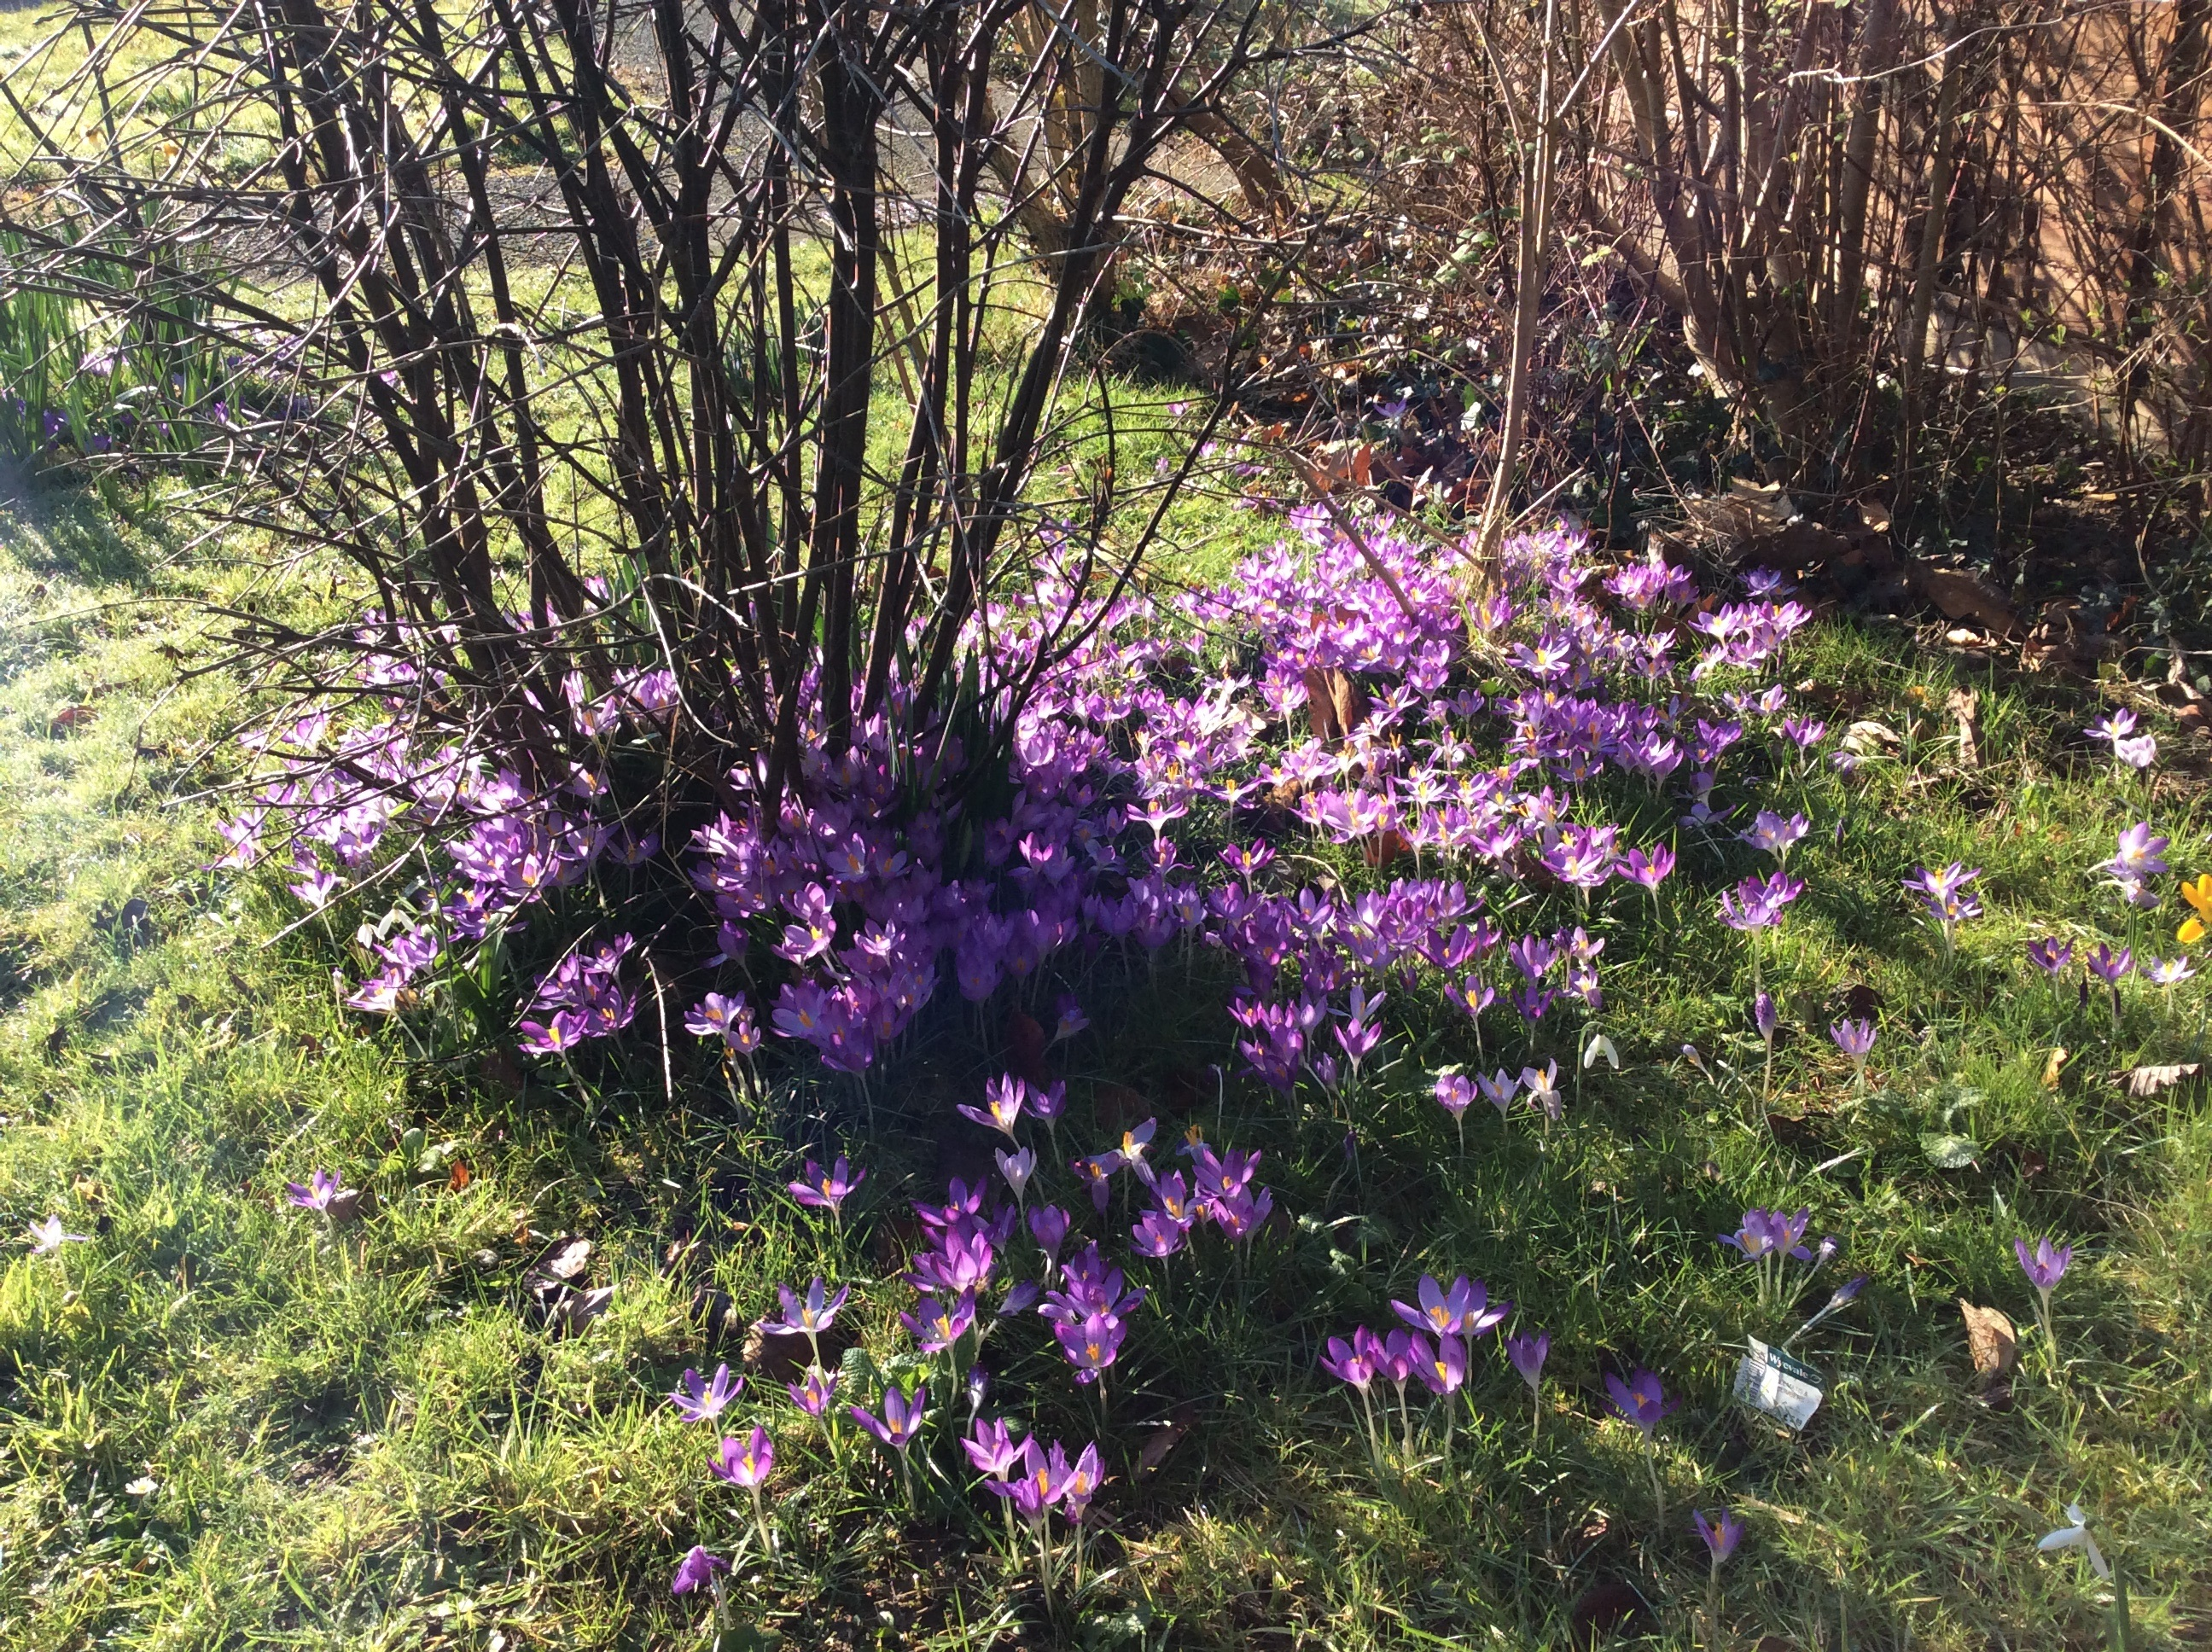 A carpet of purple crocus